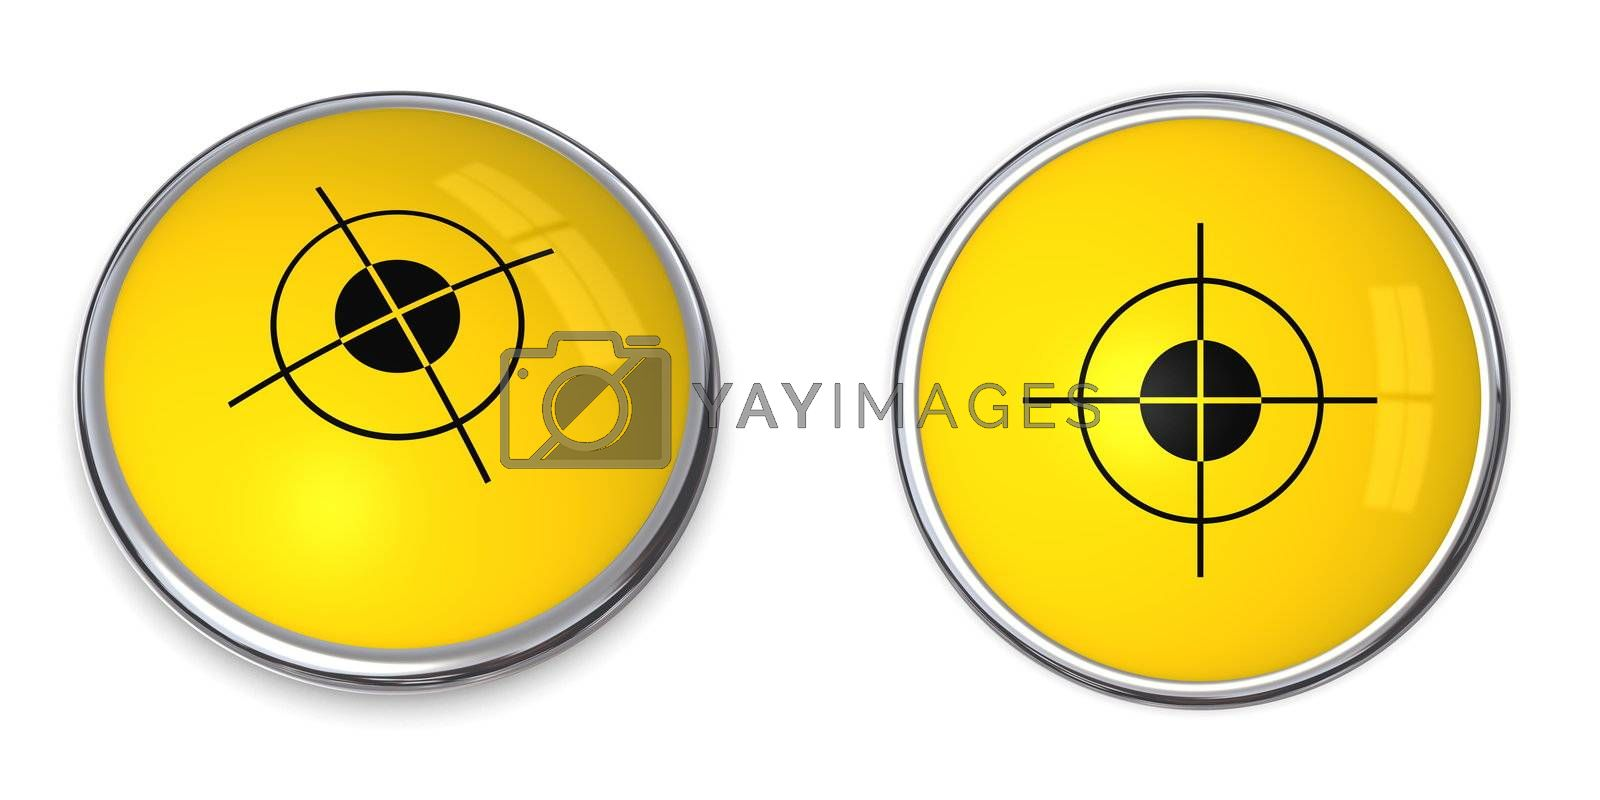 Royalty free image of Button Cross Hair Symbol by PixBox